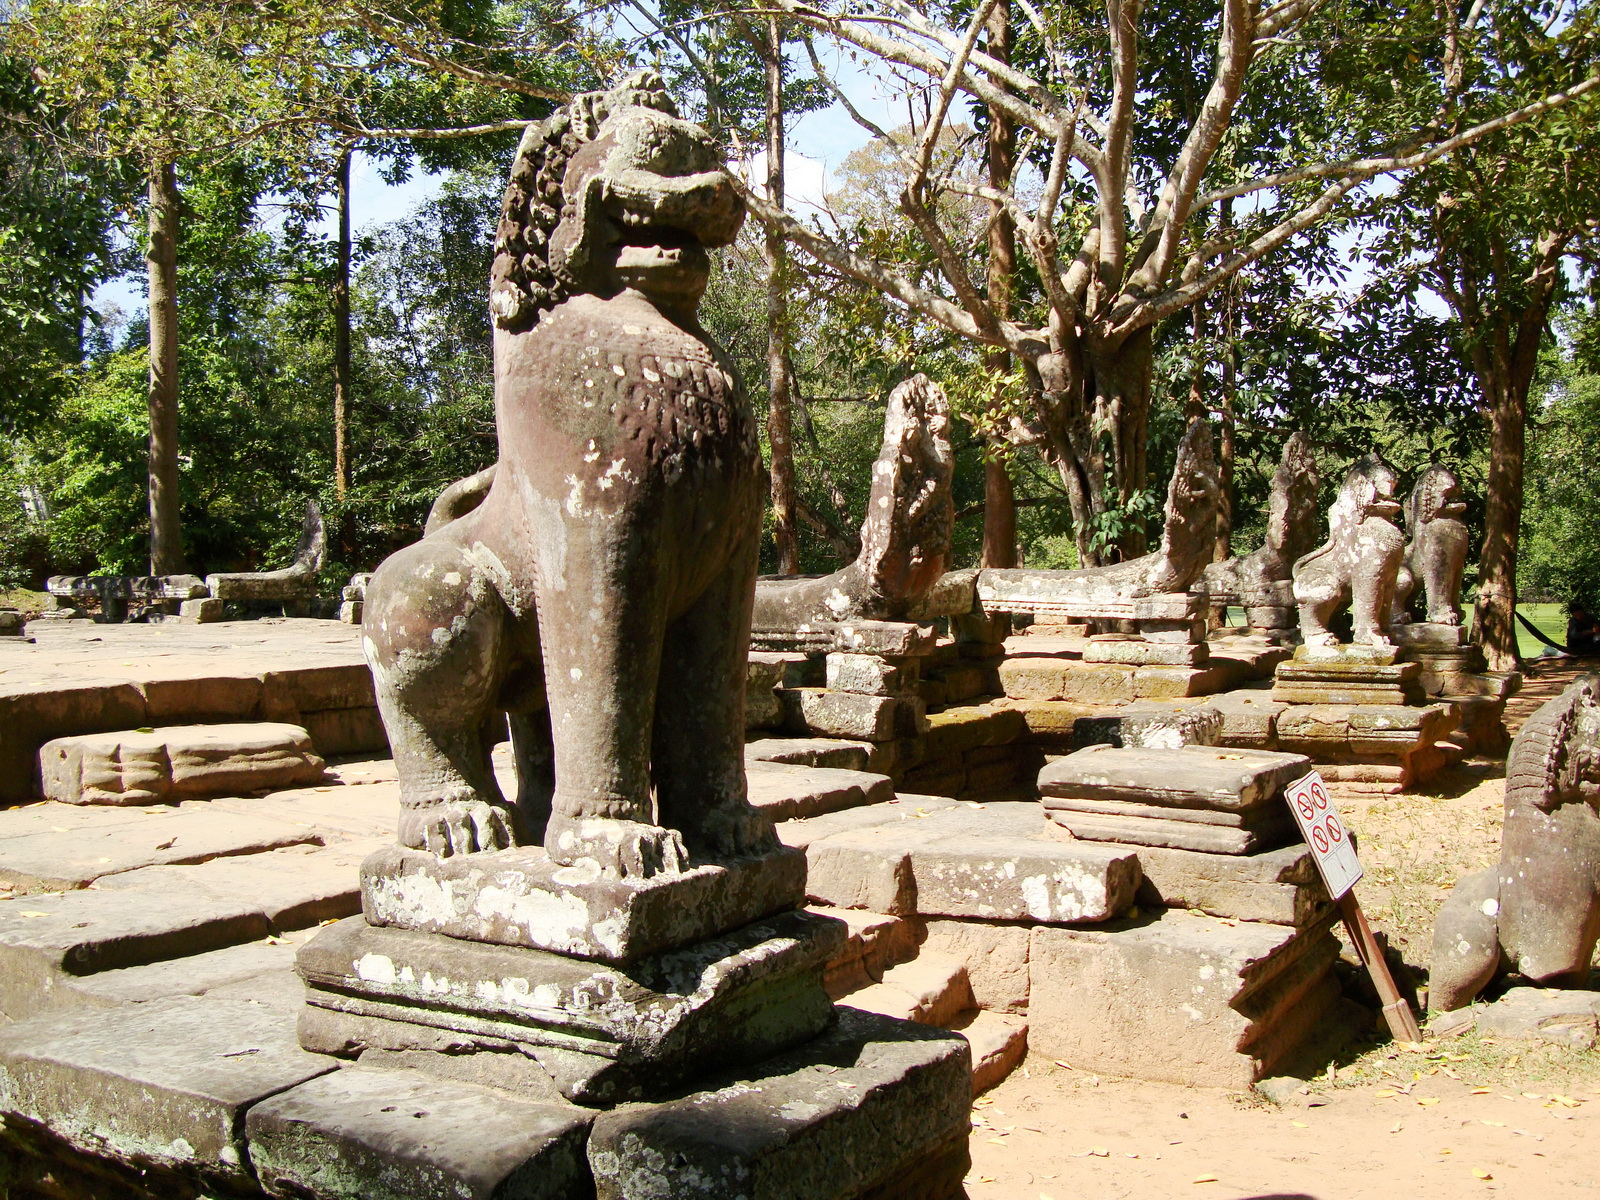 B Banteay Kdei Temple terrace with naga balustrade lion guardians Angkor 01